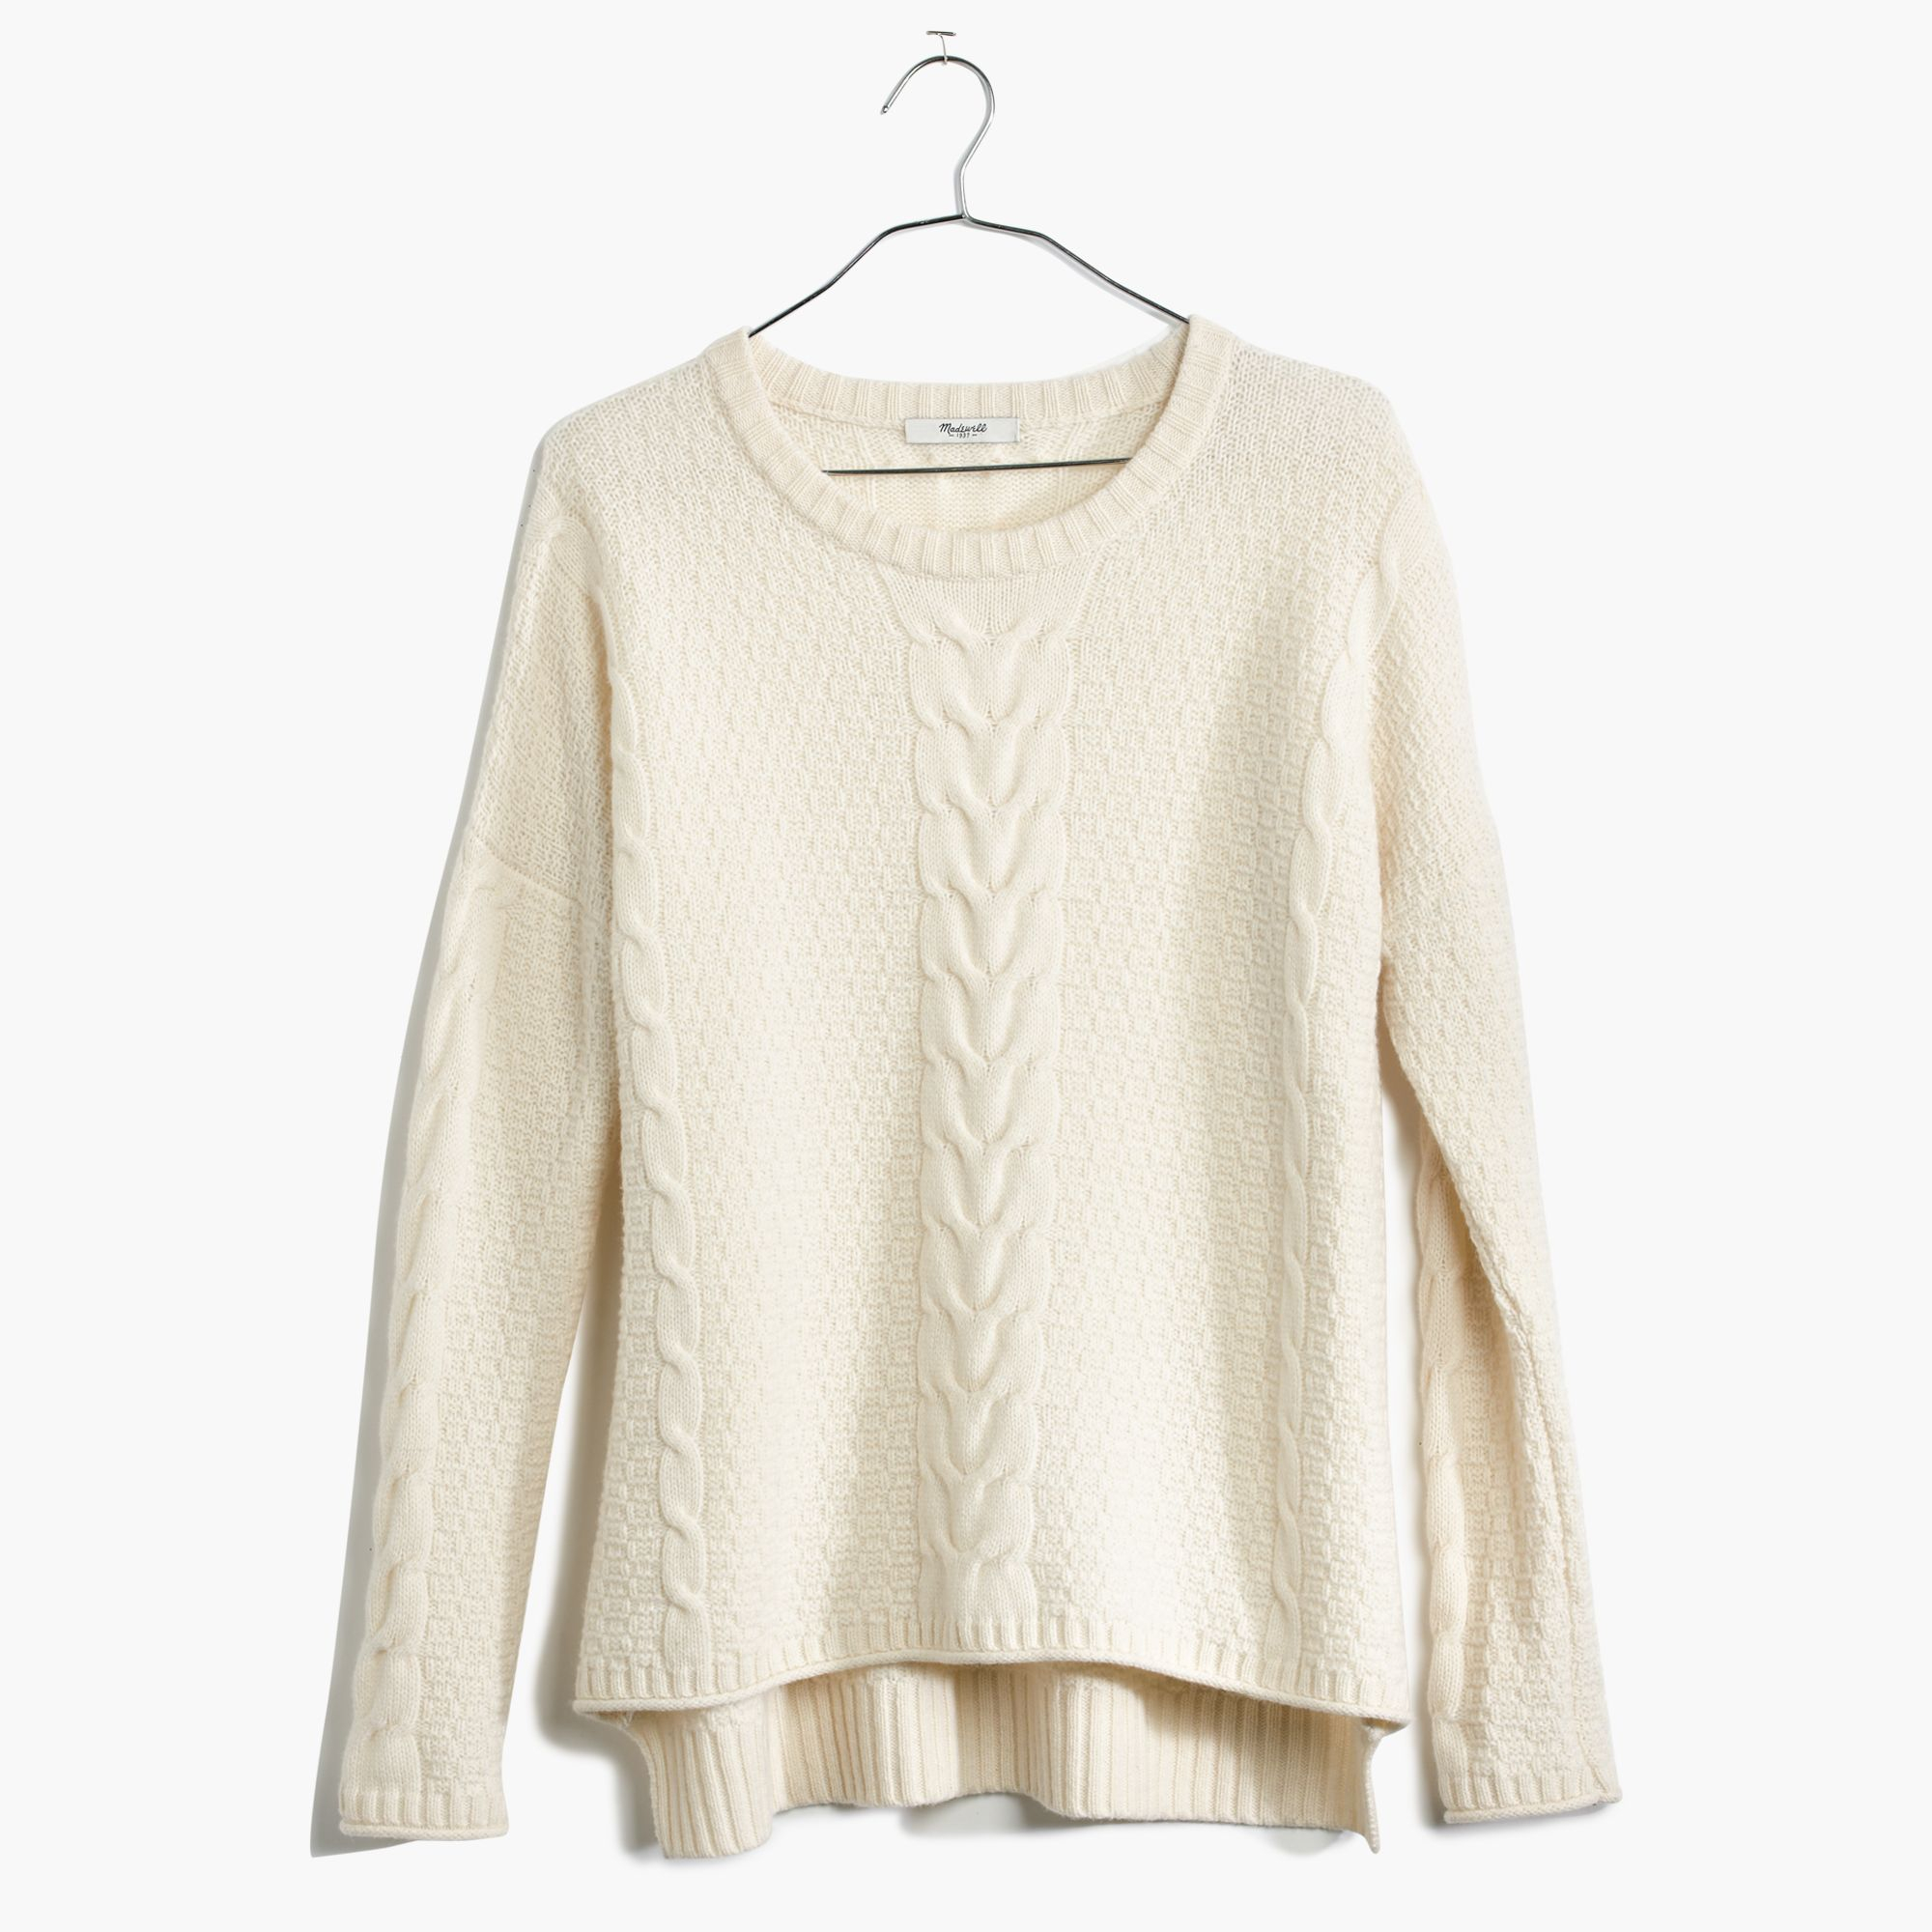 Madewell Easy Cable Pullover Sweater in White | Lyst